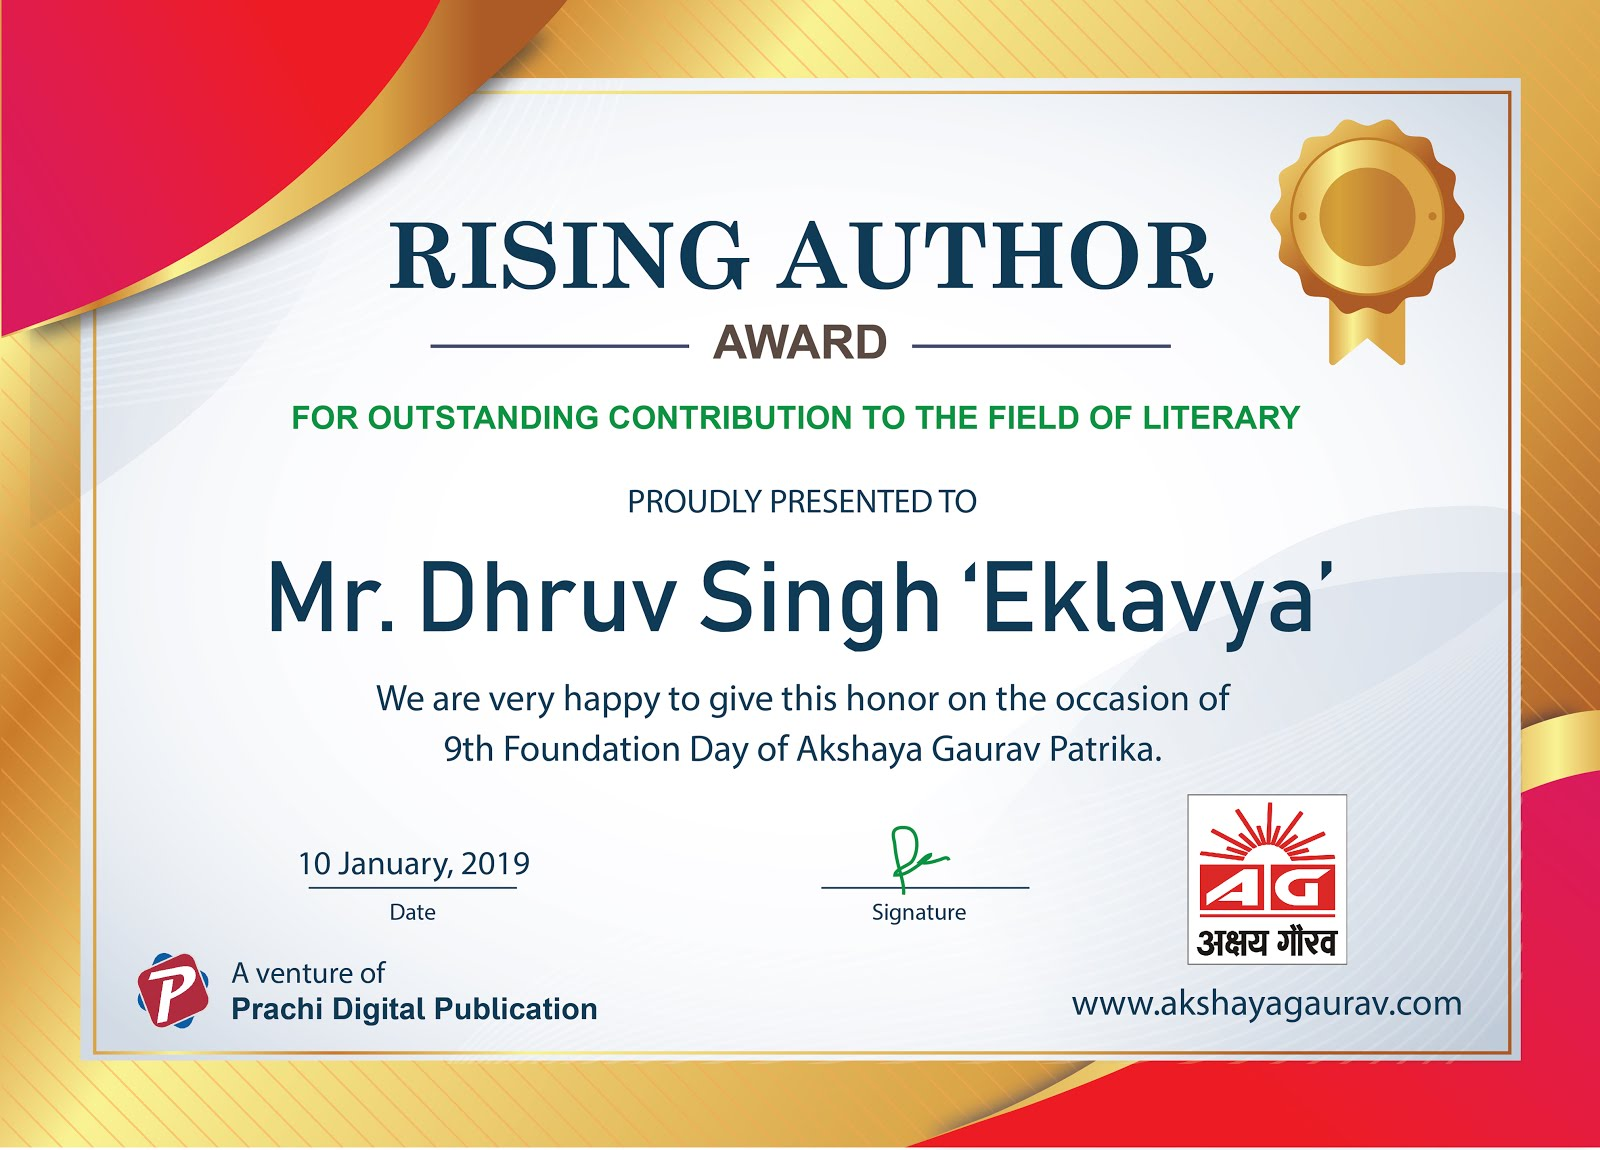 RISING AUTHOR AWARD सम्मान 2019